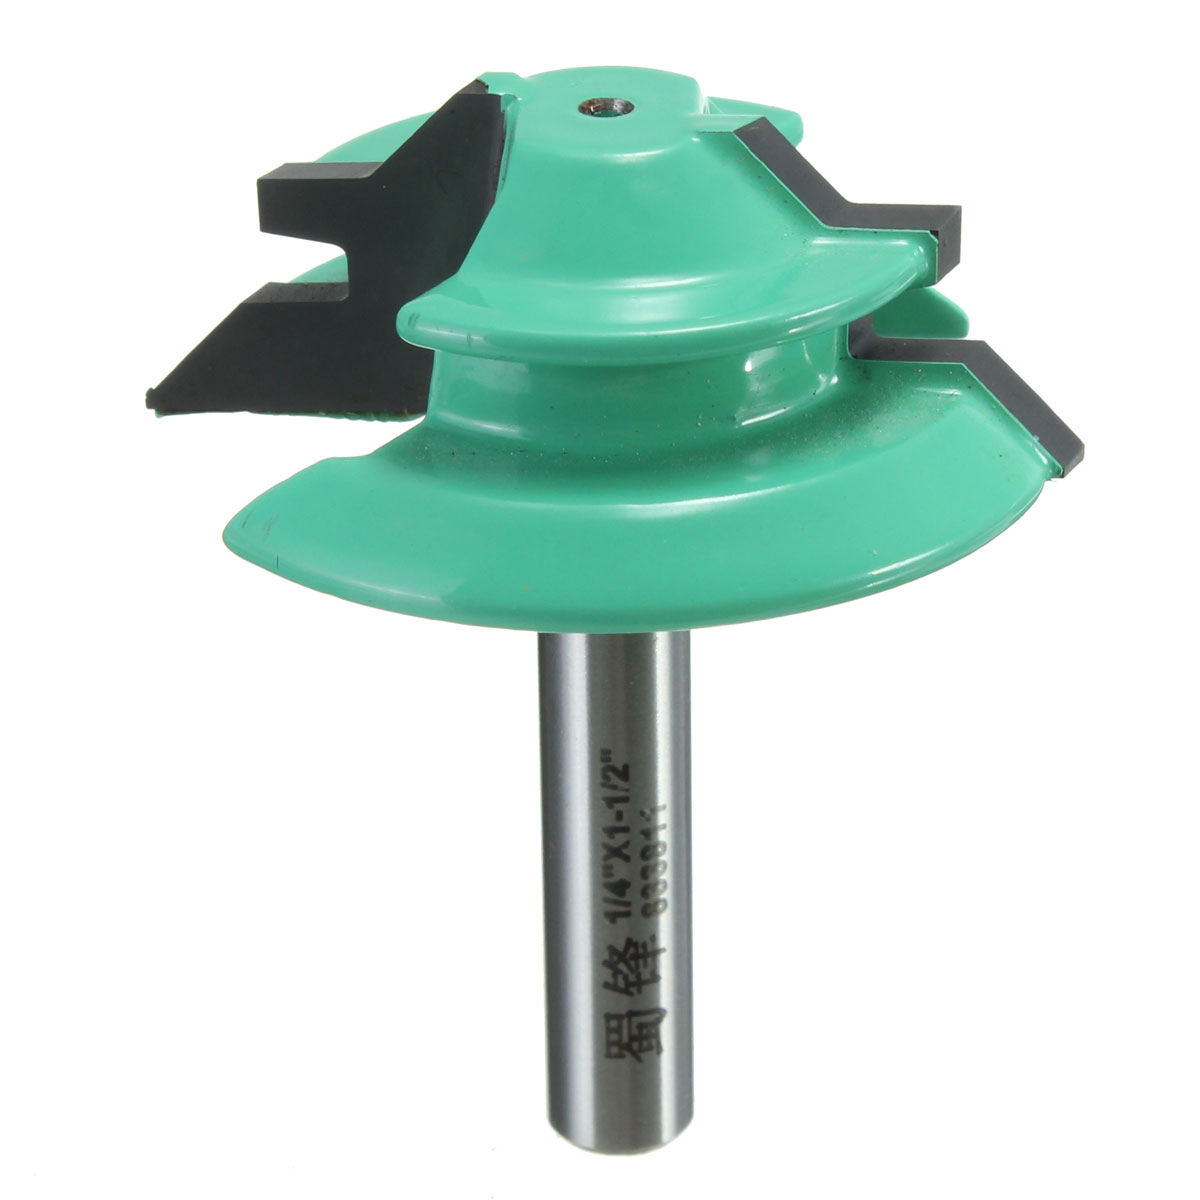 1PC 45 Degree Lock Miter Router Bit 1-1/2 Diameter 1/4 Shank Green Wood Cutter for Woodworking Drilling Power Tools футболка детская dumbo the flying elephant 3699 jangpierre 2015